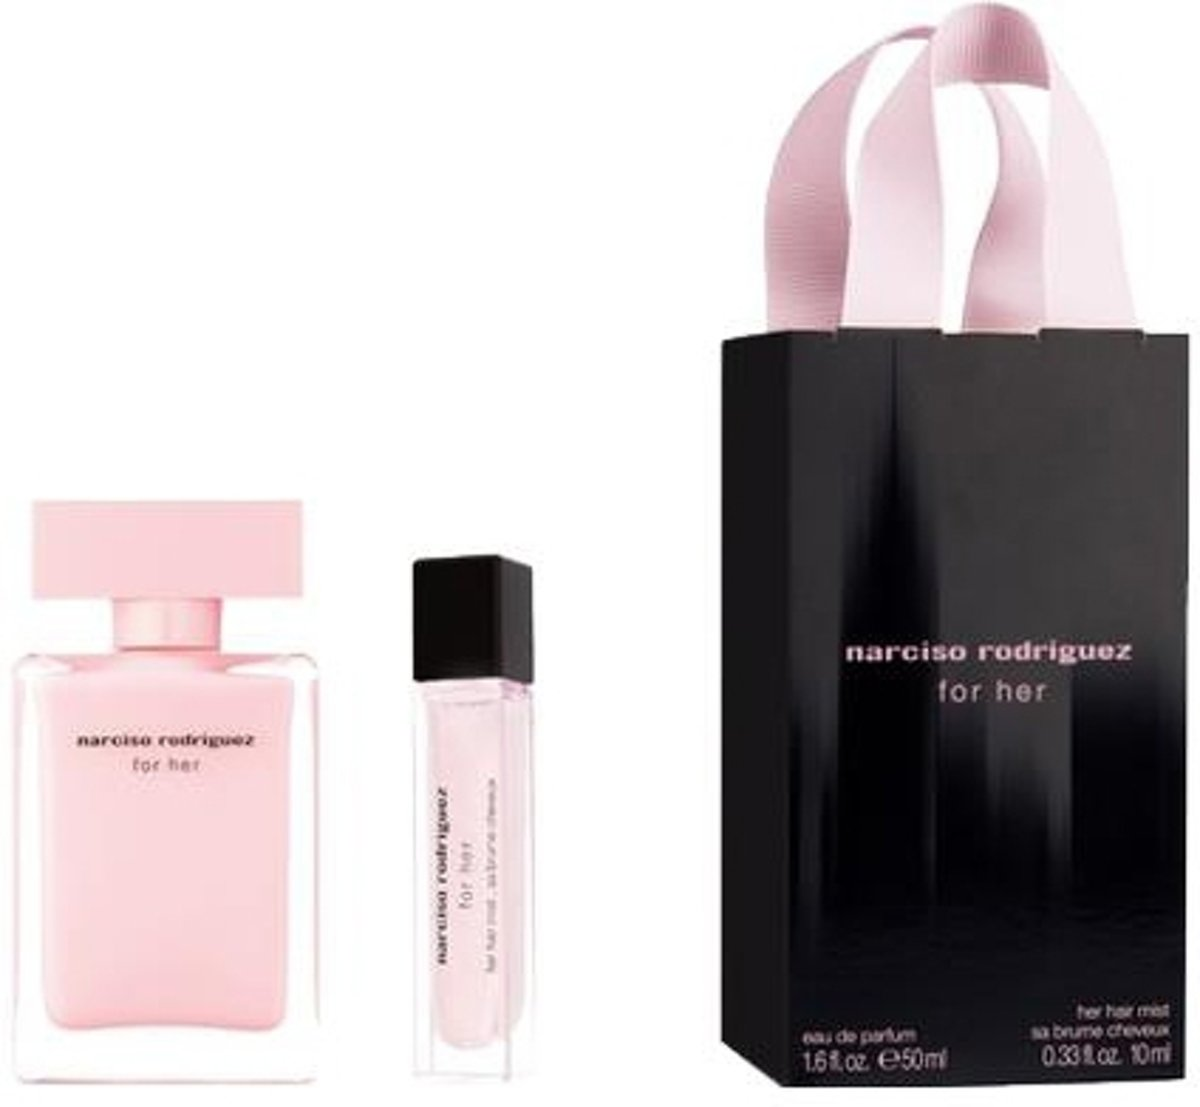 Narciso Rodriguez - For her 50ml eau de parfum + 10ml Hairmist - Gifts ml